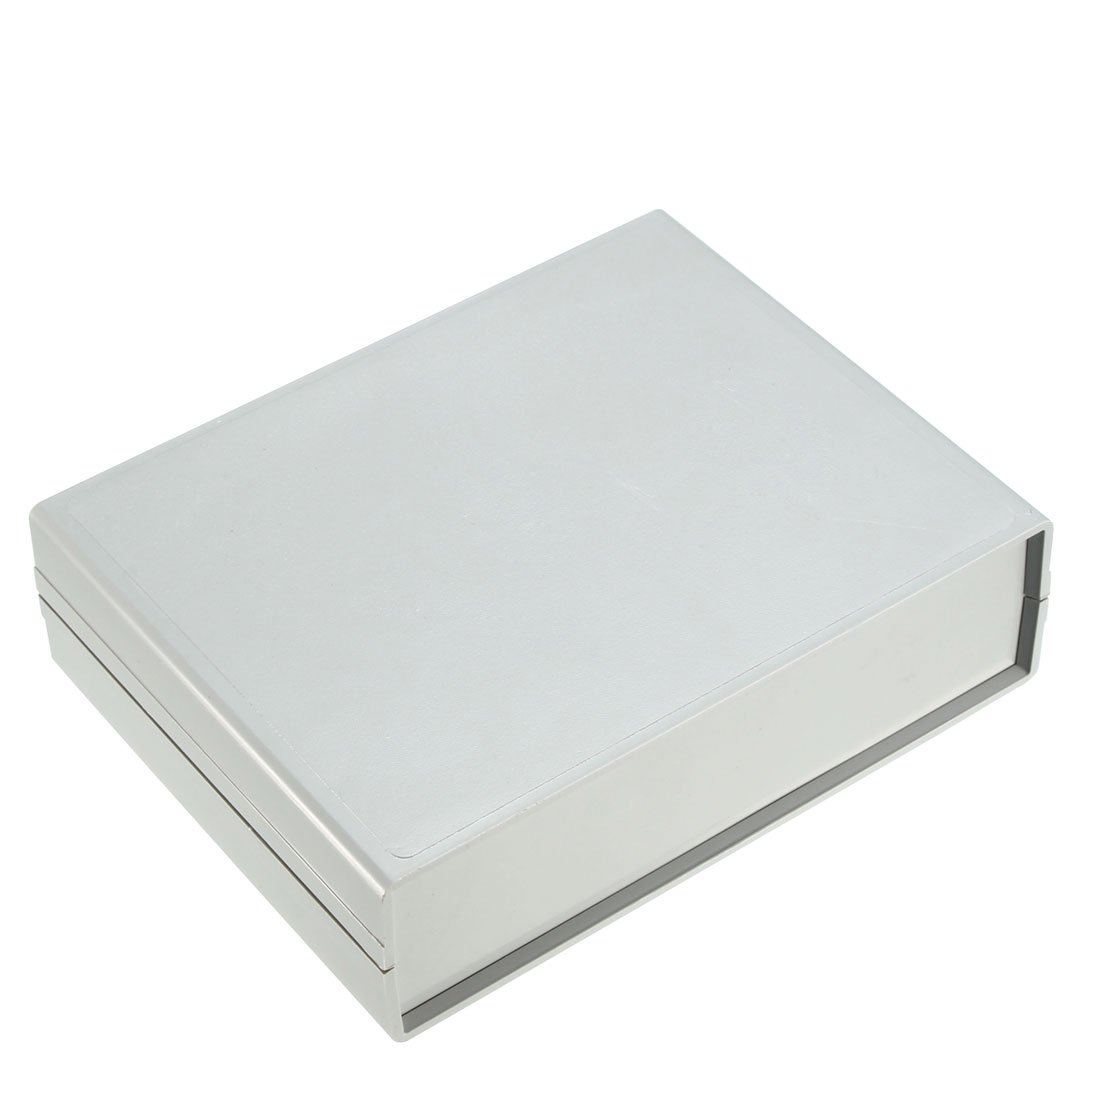 sourcingmap 120 x 80 x 65mm Electronic Plastic DIY Junction Project Box Enclosure Case with Mounted Hole